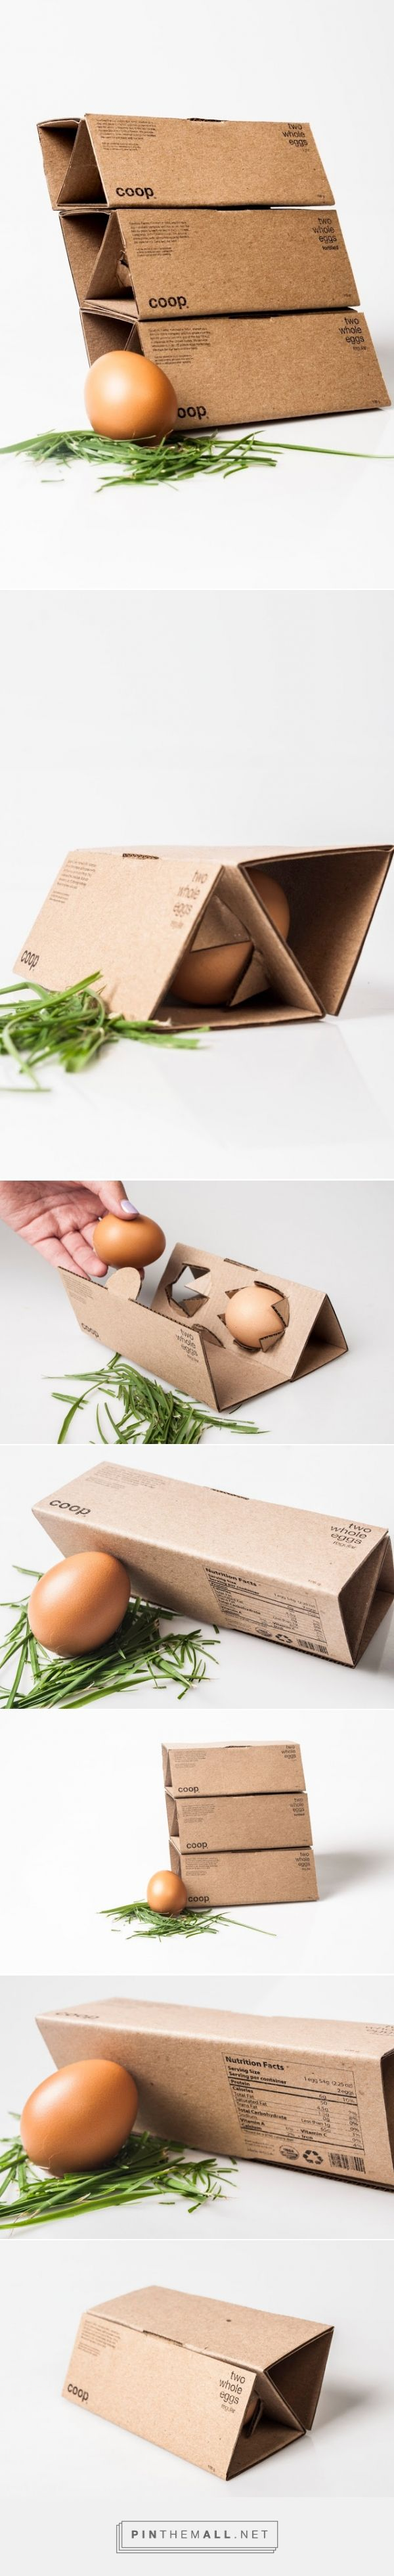 Coop ‪#‎eggs‬ ‪#‎packaging‬ ‪#‎concept‬ designed by Aimee Domínguez & Daniela Fonseca - http://www.packagingoftheworld.com/2015/04/coop-student-project.html